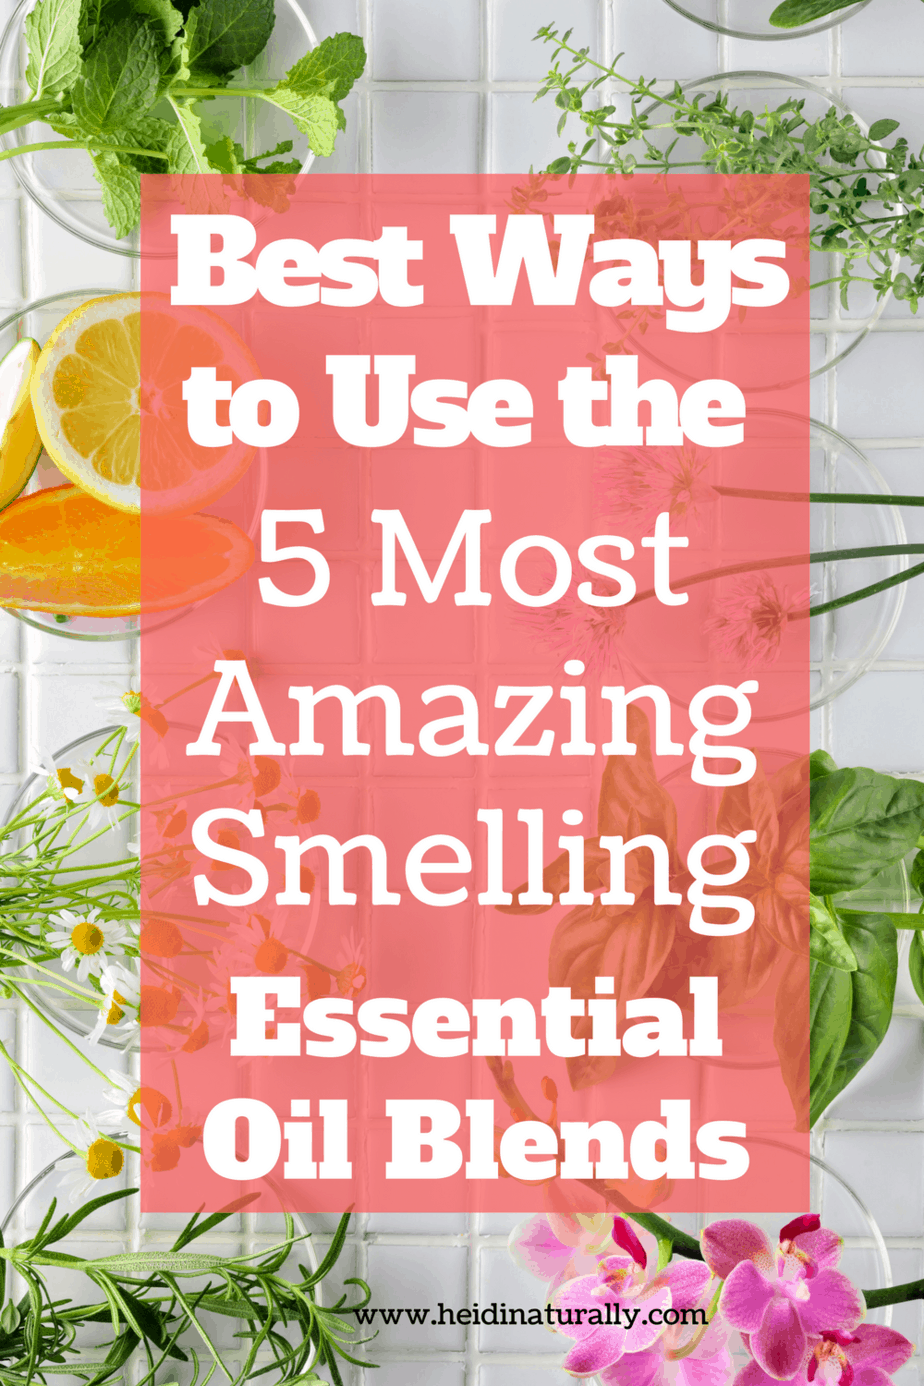 Find out which essential oil blends smell the best and how to use them most effectively. Learn what oils smell amazing and how to use them daily.